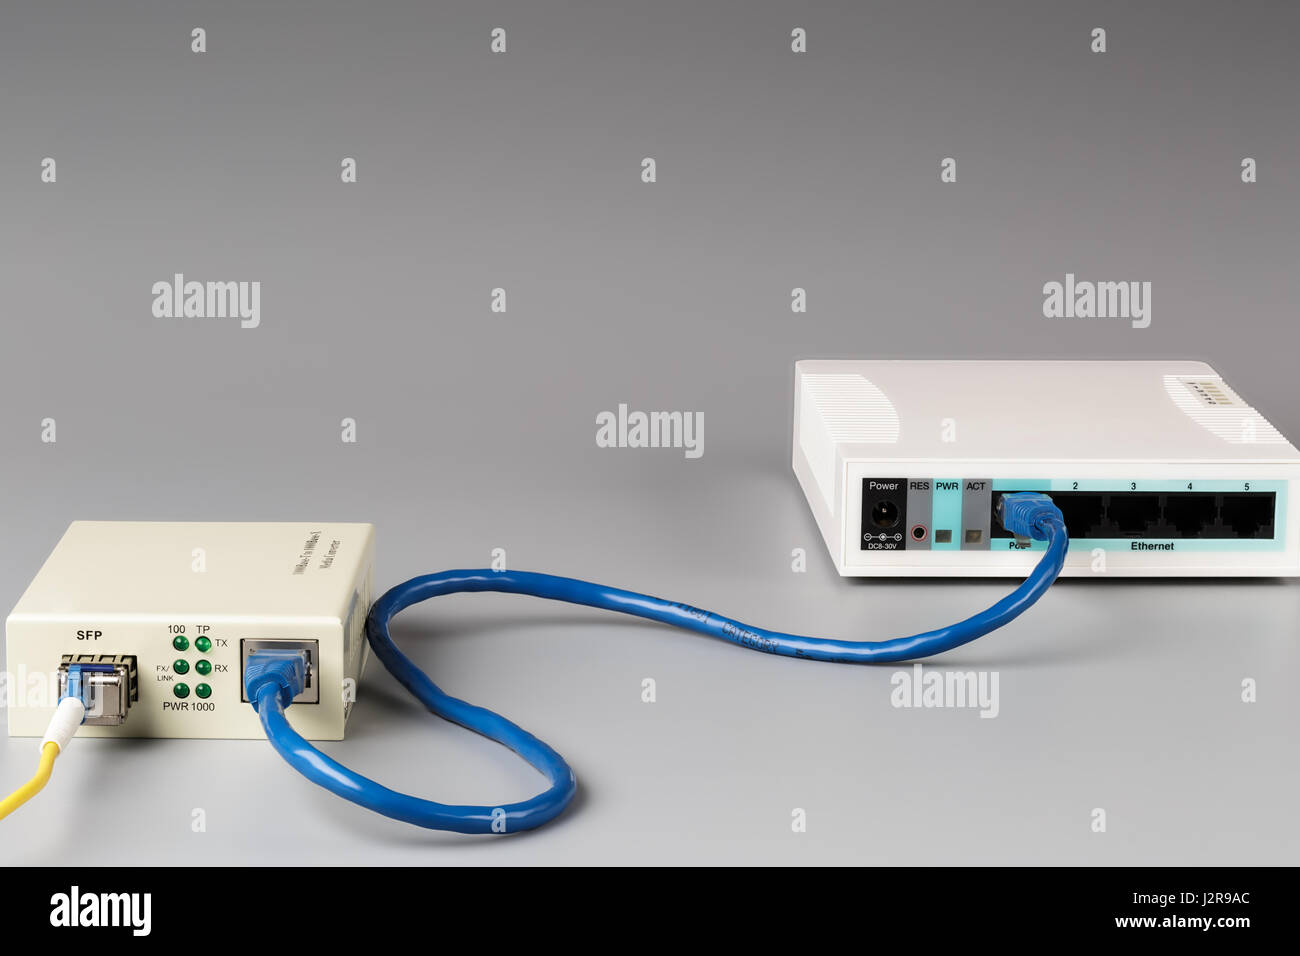 Media converter with optical patchcord and router connected via copper cable - Stock Image